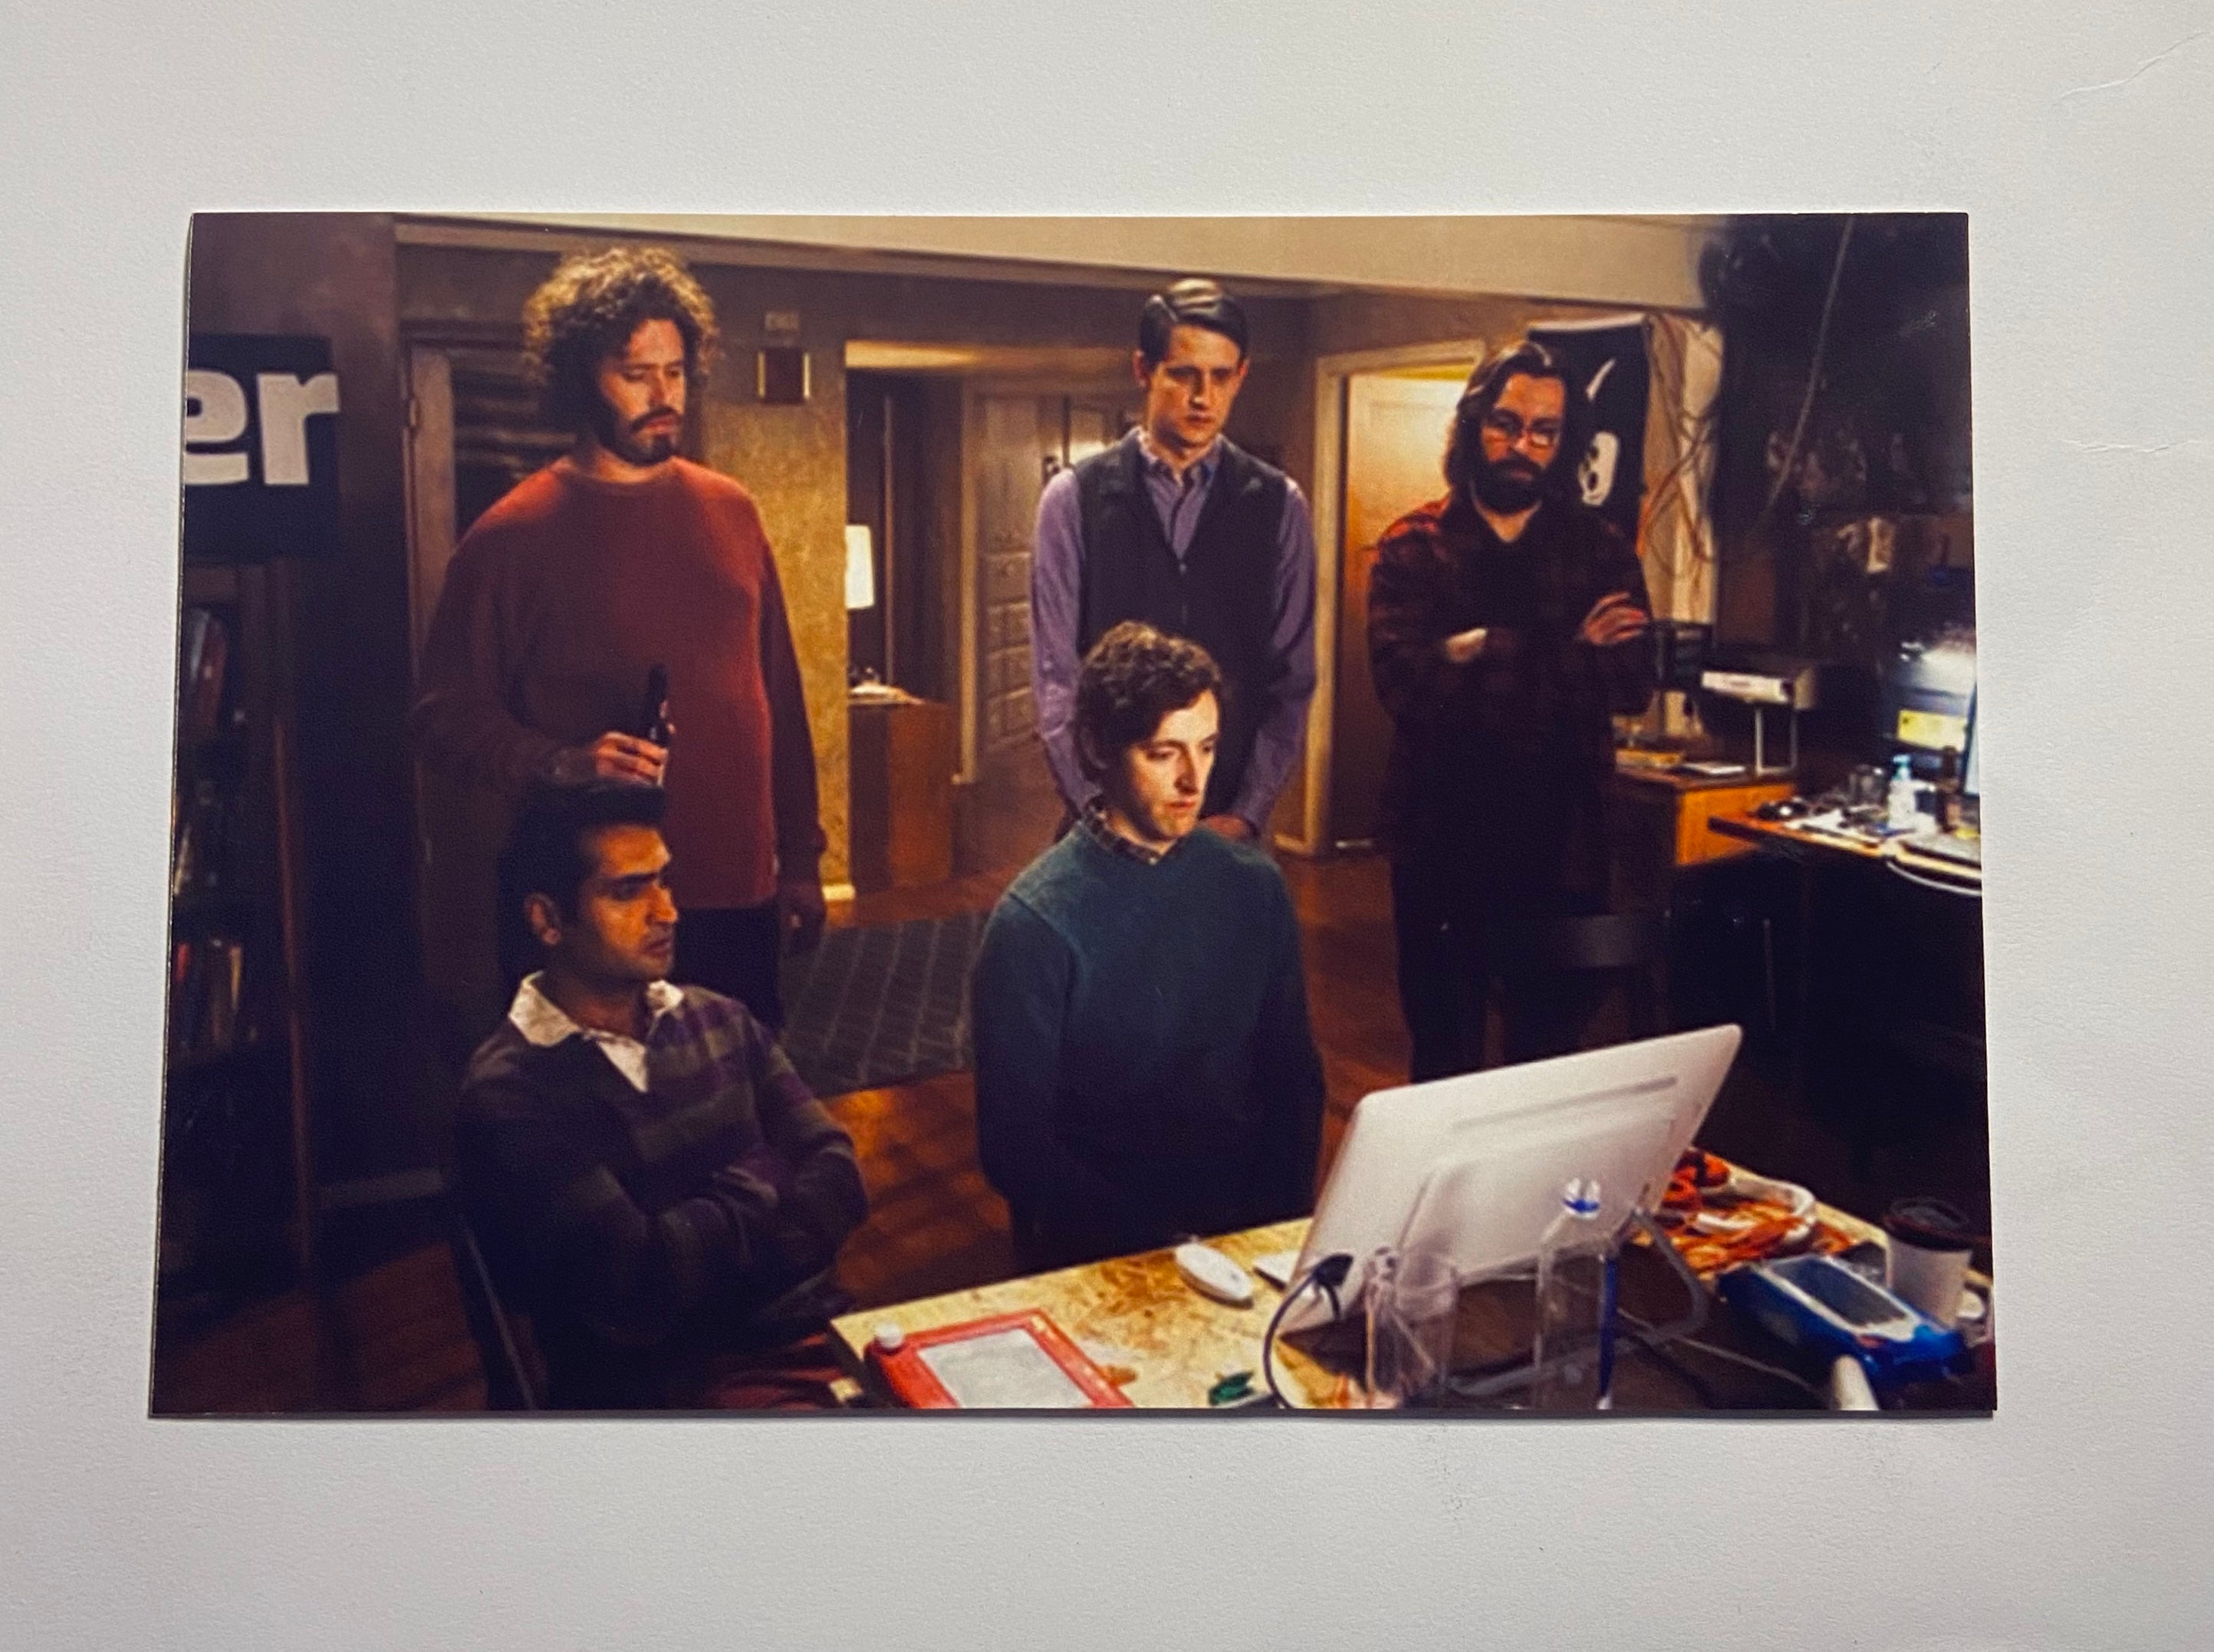 SILICON VALLEY: Photo of the Pied Piper Crew in the Hacker Hostel